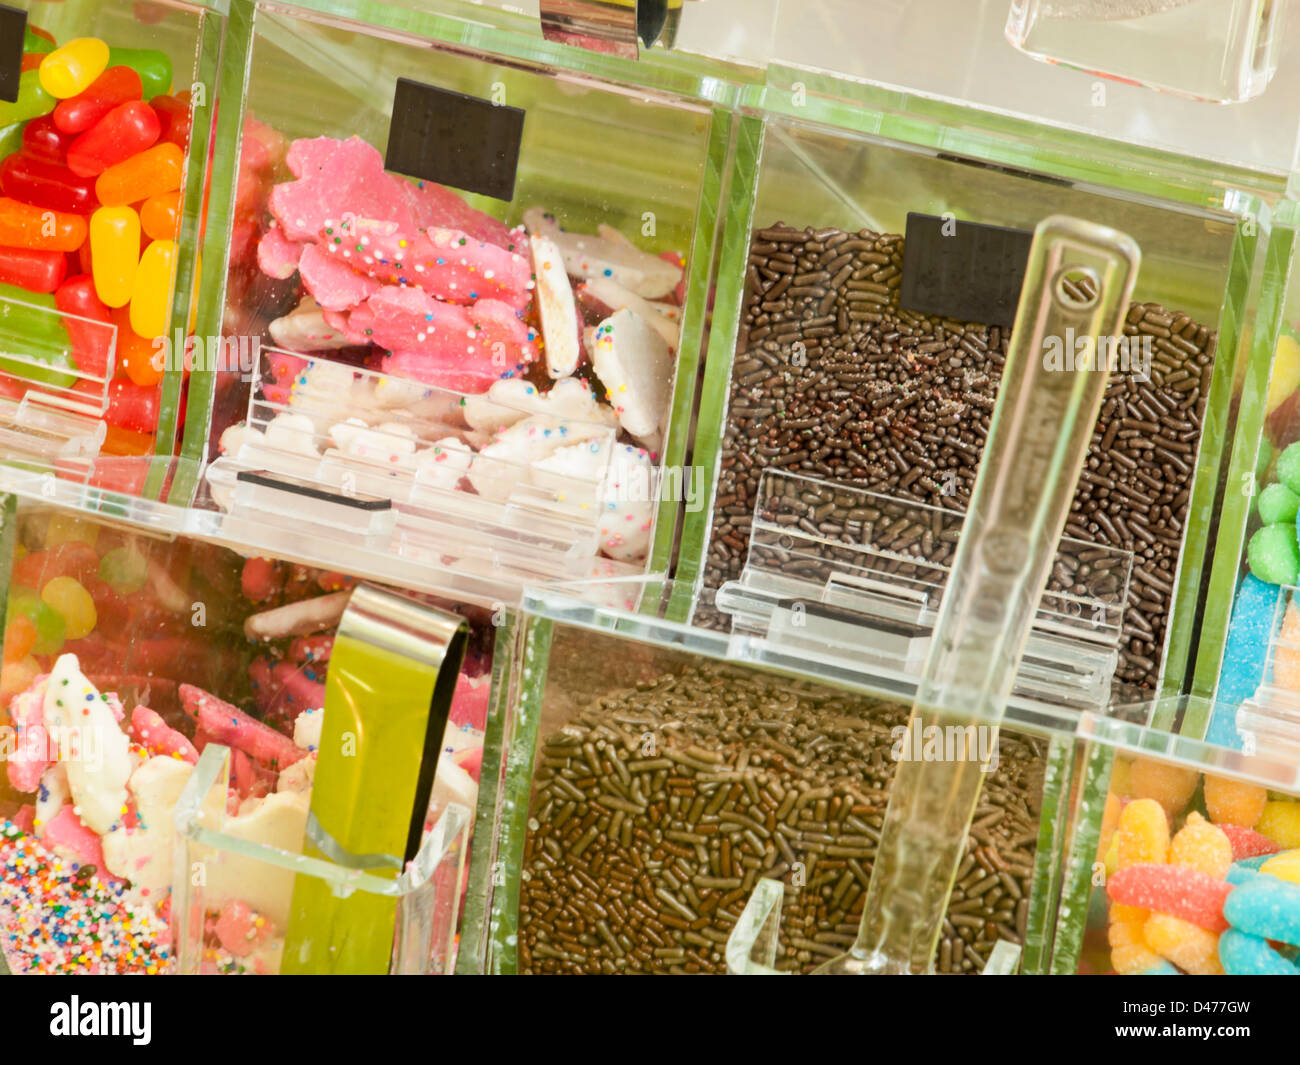 Frozen Yogurt Toppings Bar. Yogurt Toppings Ranging From Fresh Fruits,  Nuts, Fresh Cut Candies, Syrups And Sprinkles